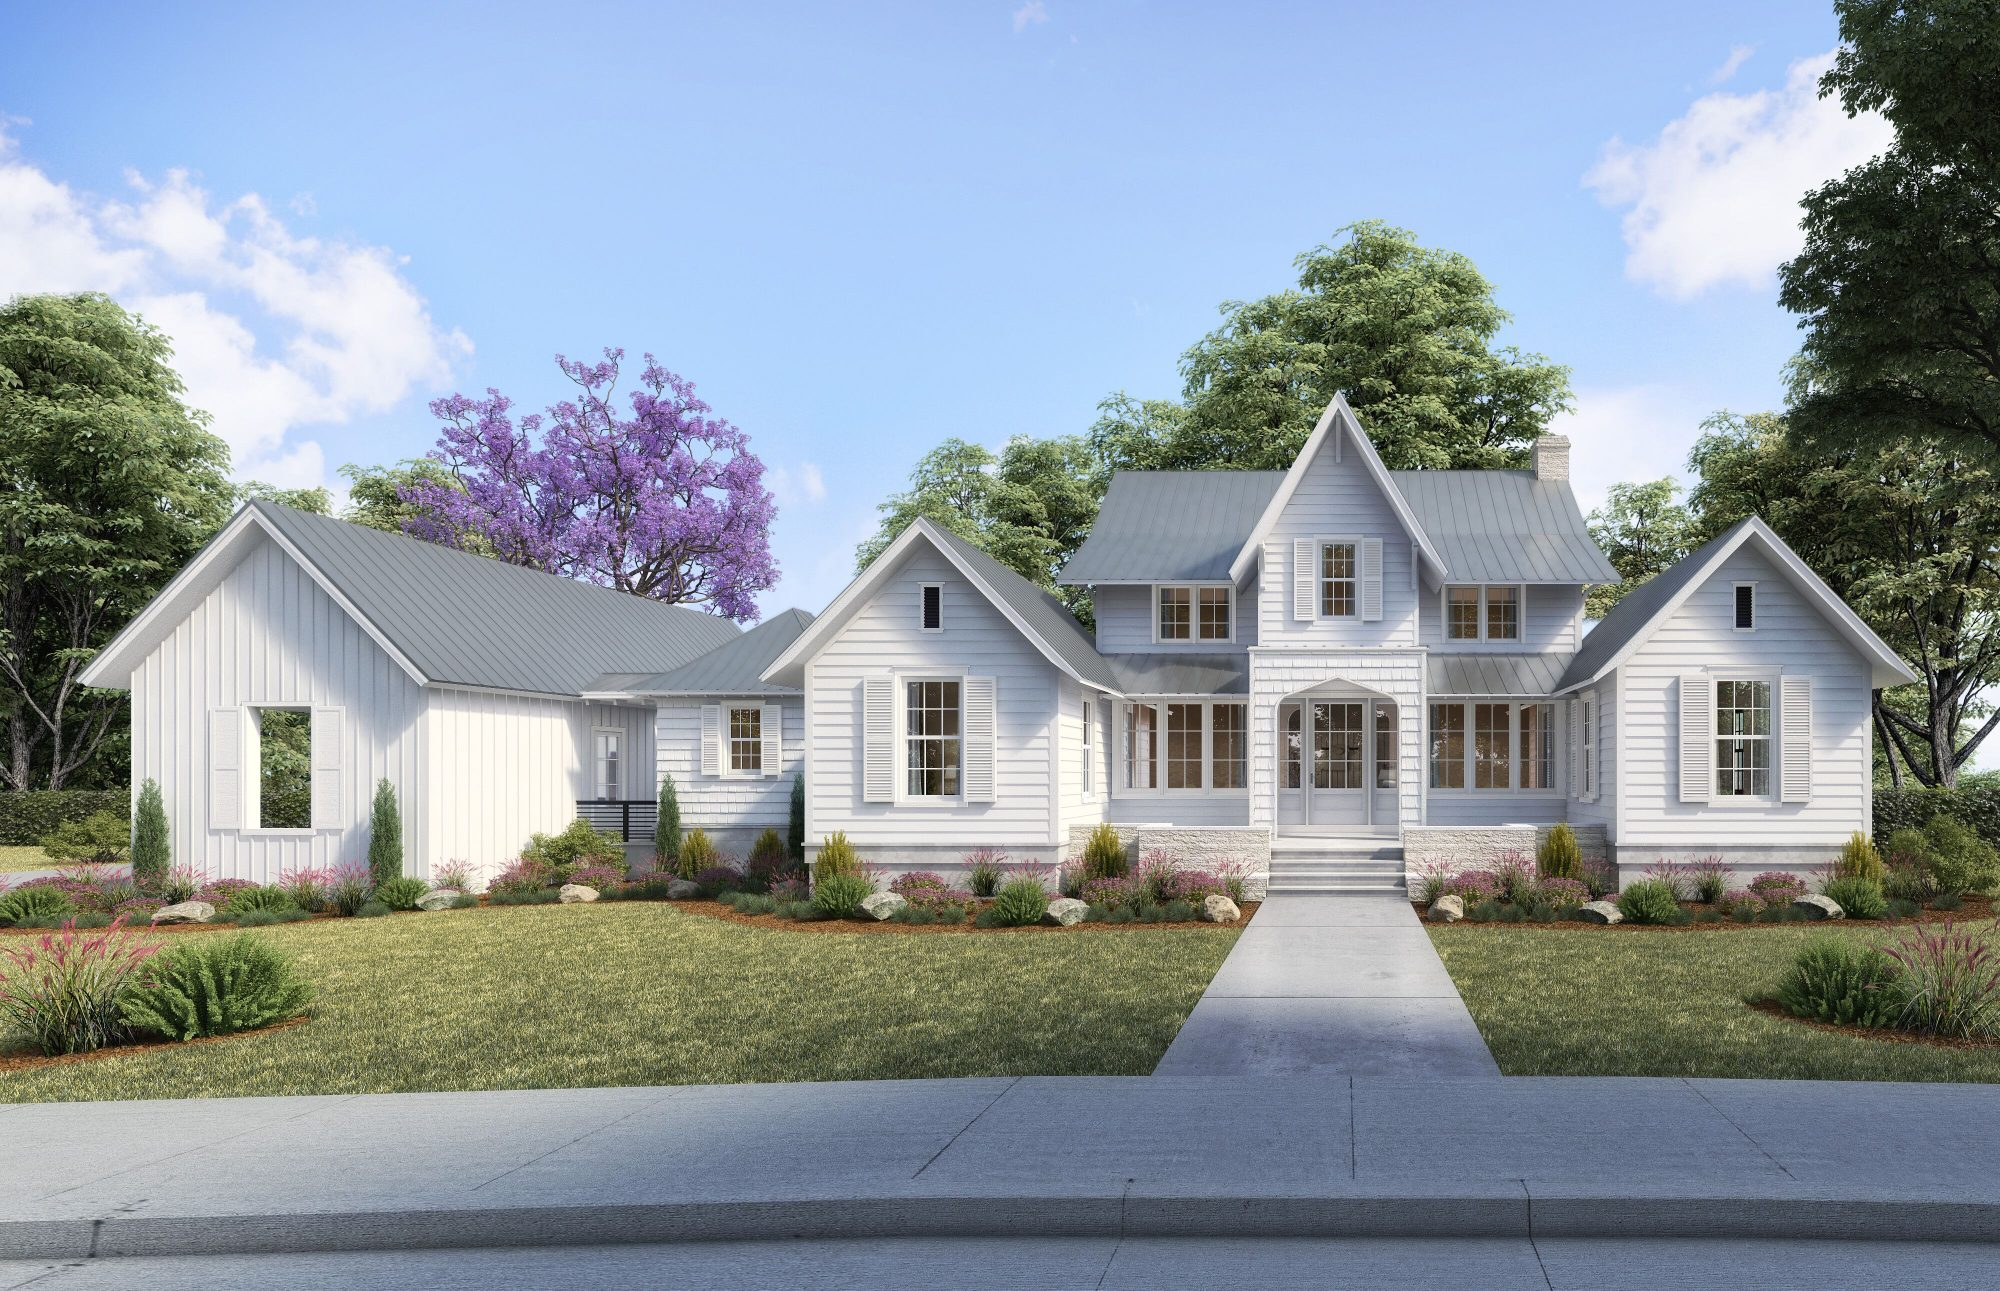 2020 Idea House Rendering in Asheville, NC